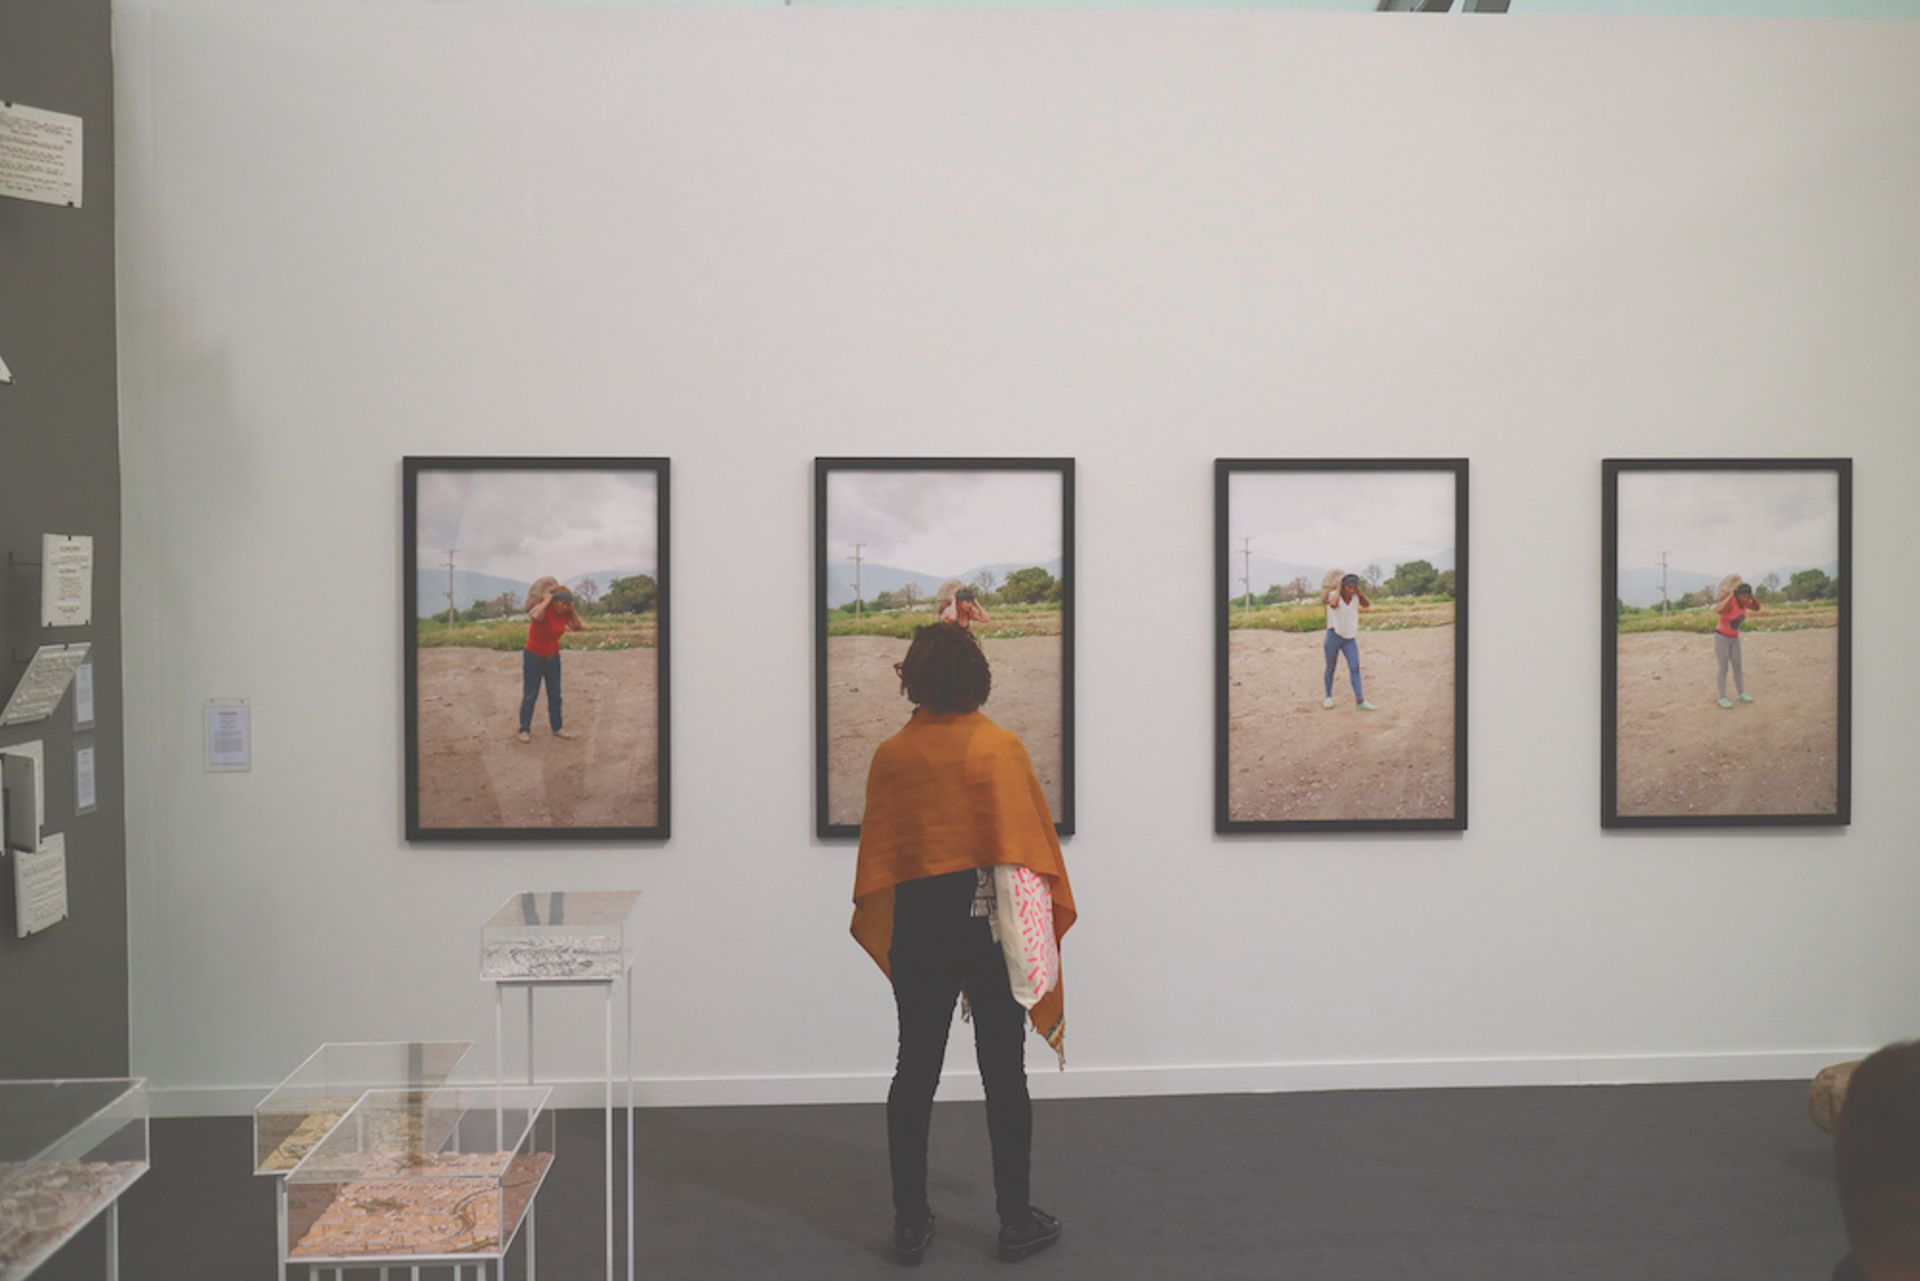 Mor Charpentier gallery is exhibiting works by the Mexican artist Teresa Margolles at Frieze New York Casey Fatchett